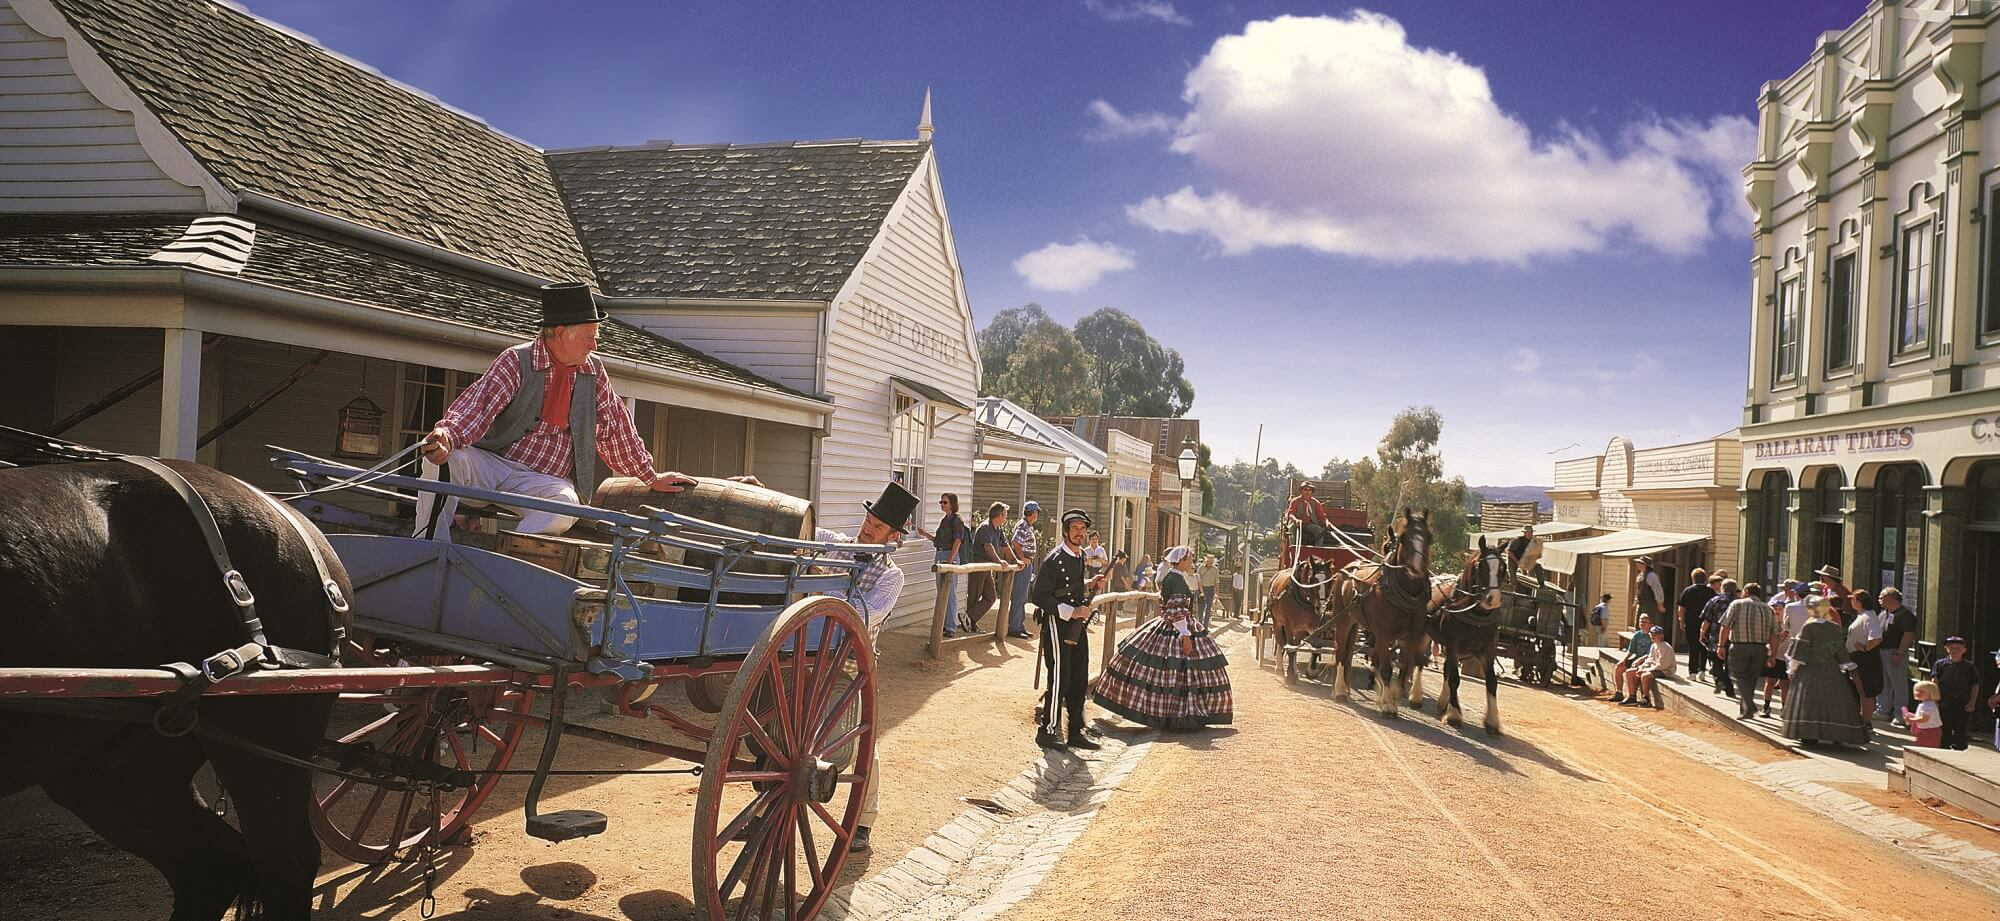 Sovereign Hill, Victoria